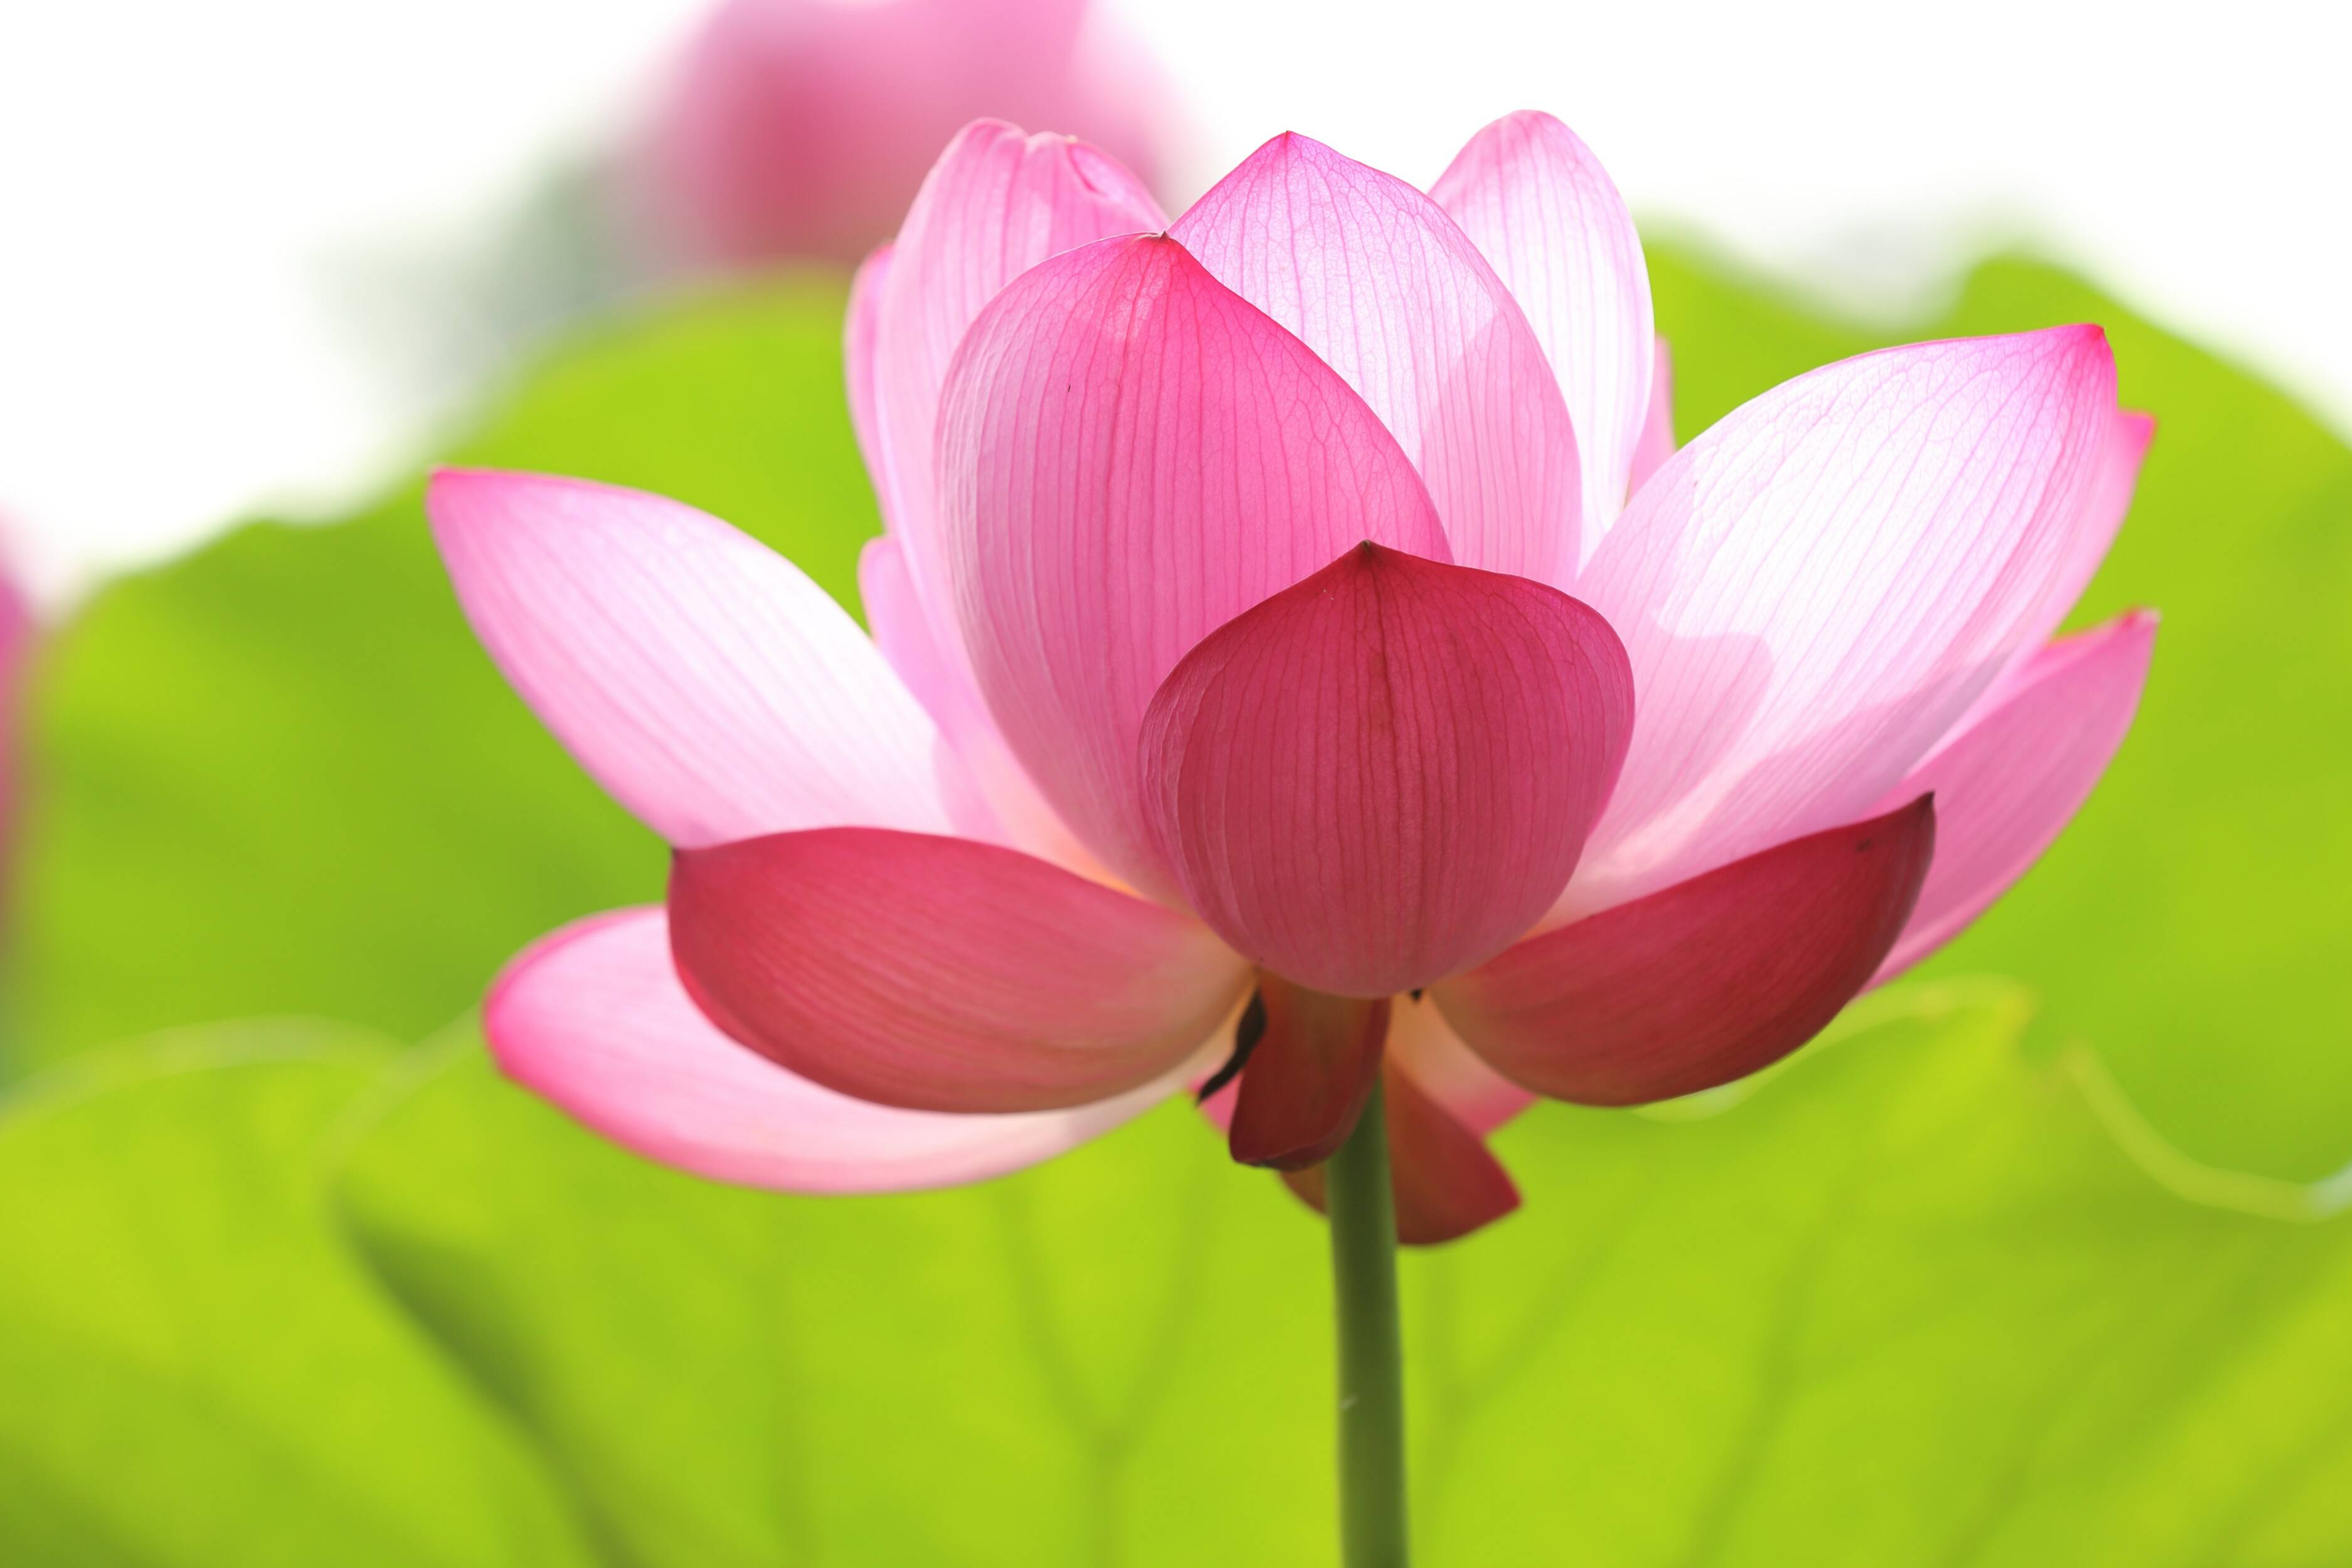 photo of about to bloom lotus flower - Baan Siam Massage & Spa Gutschein-Shop